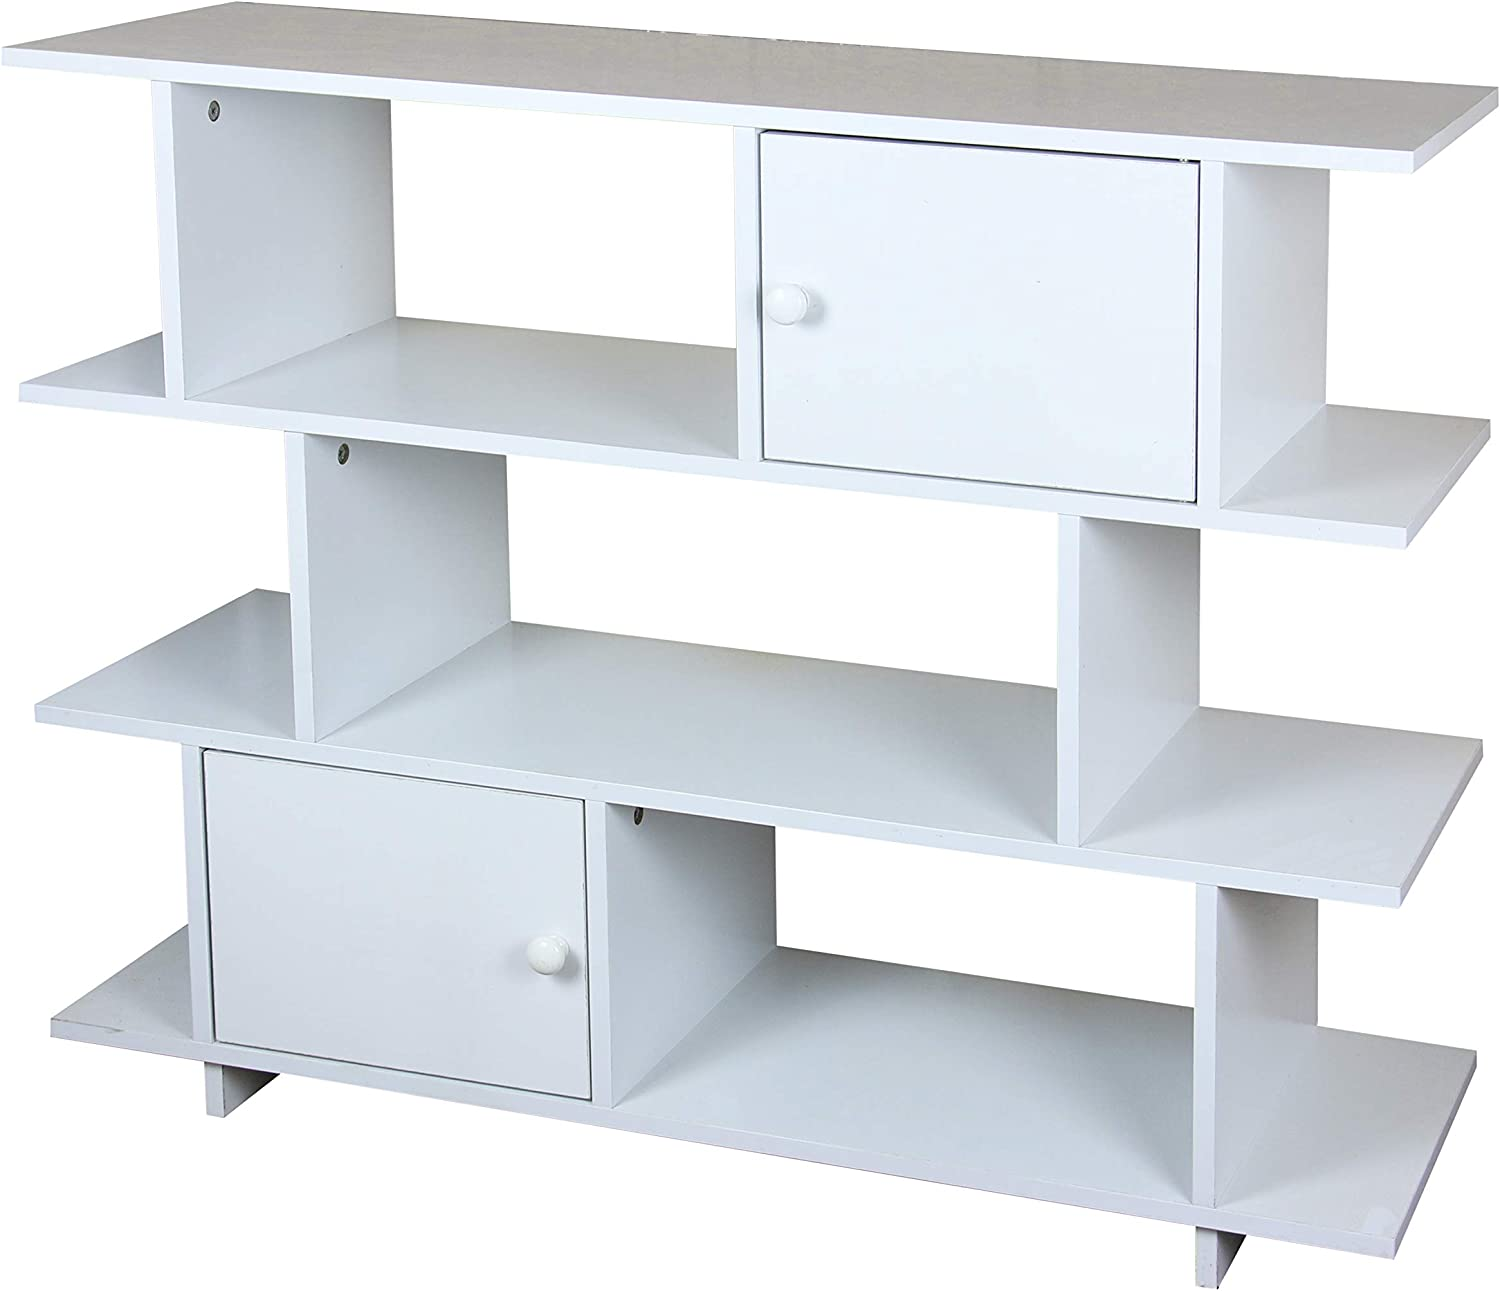 Home Basics 3 Tier Wood Display Book Shelf Organizer Unit with 2 Cabinet Doors (White)